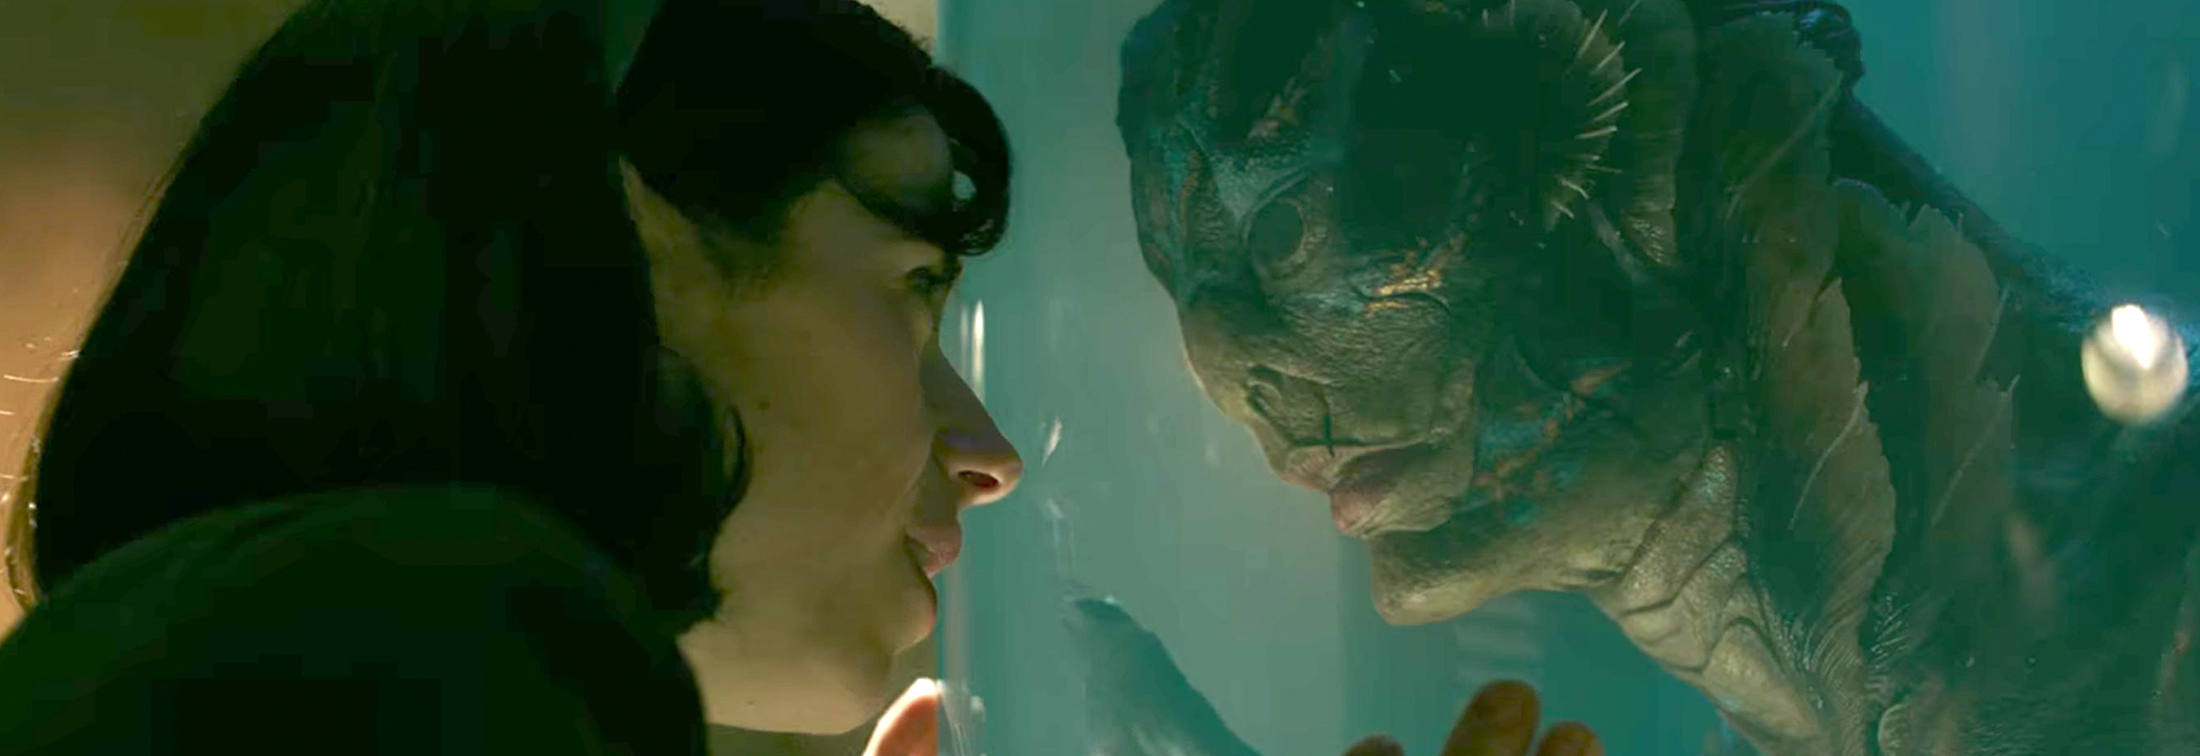 review, The Shape of Water, The, Shape, of, Water, film, movie, latest movies, new movie, movie ratings, current movie reviews, latest films, recent movies, current movies, movie critics, new movie reviews, latest movie reviews, latest movies out, the latest movies, review film, latest cinema releases, Australian reviews, home entertainment, DVD, Blu-ray, Michael Shannon, Doug Jones, Michael Stuhlbarg, Lauren Lee Smith, Octavia Spencer, Richard Jenkins, Sally Hawkins, Nick Searcy, Dru Viergever, Guillermo Del Toro, Drama, Fantasy, Supernatural